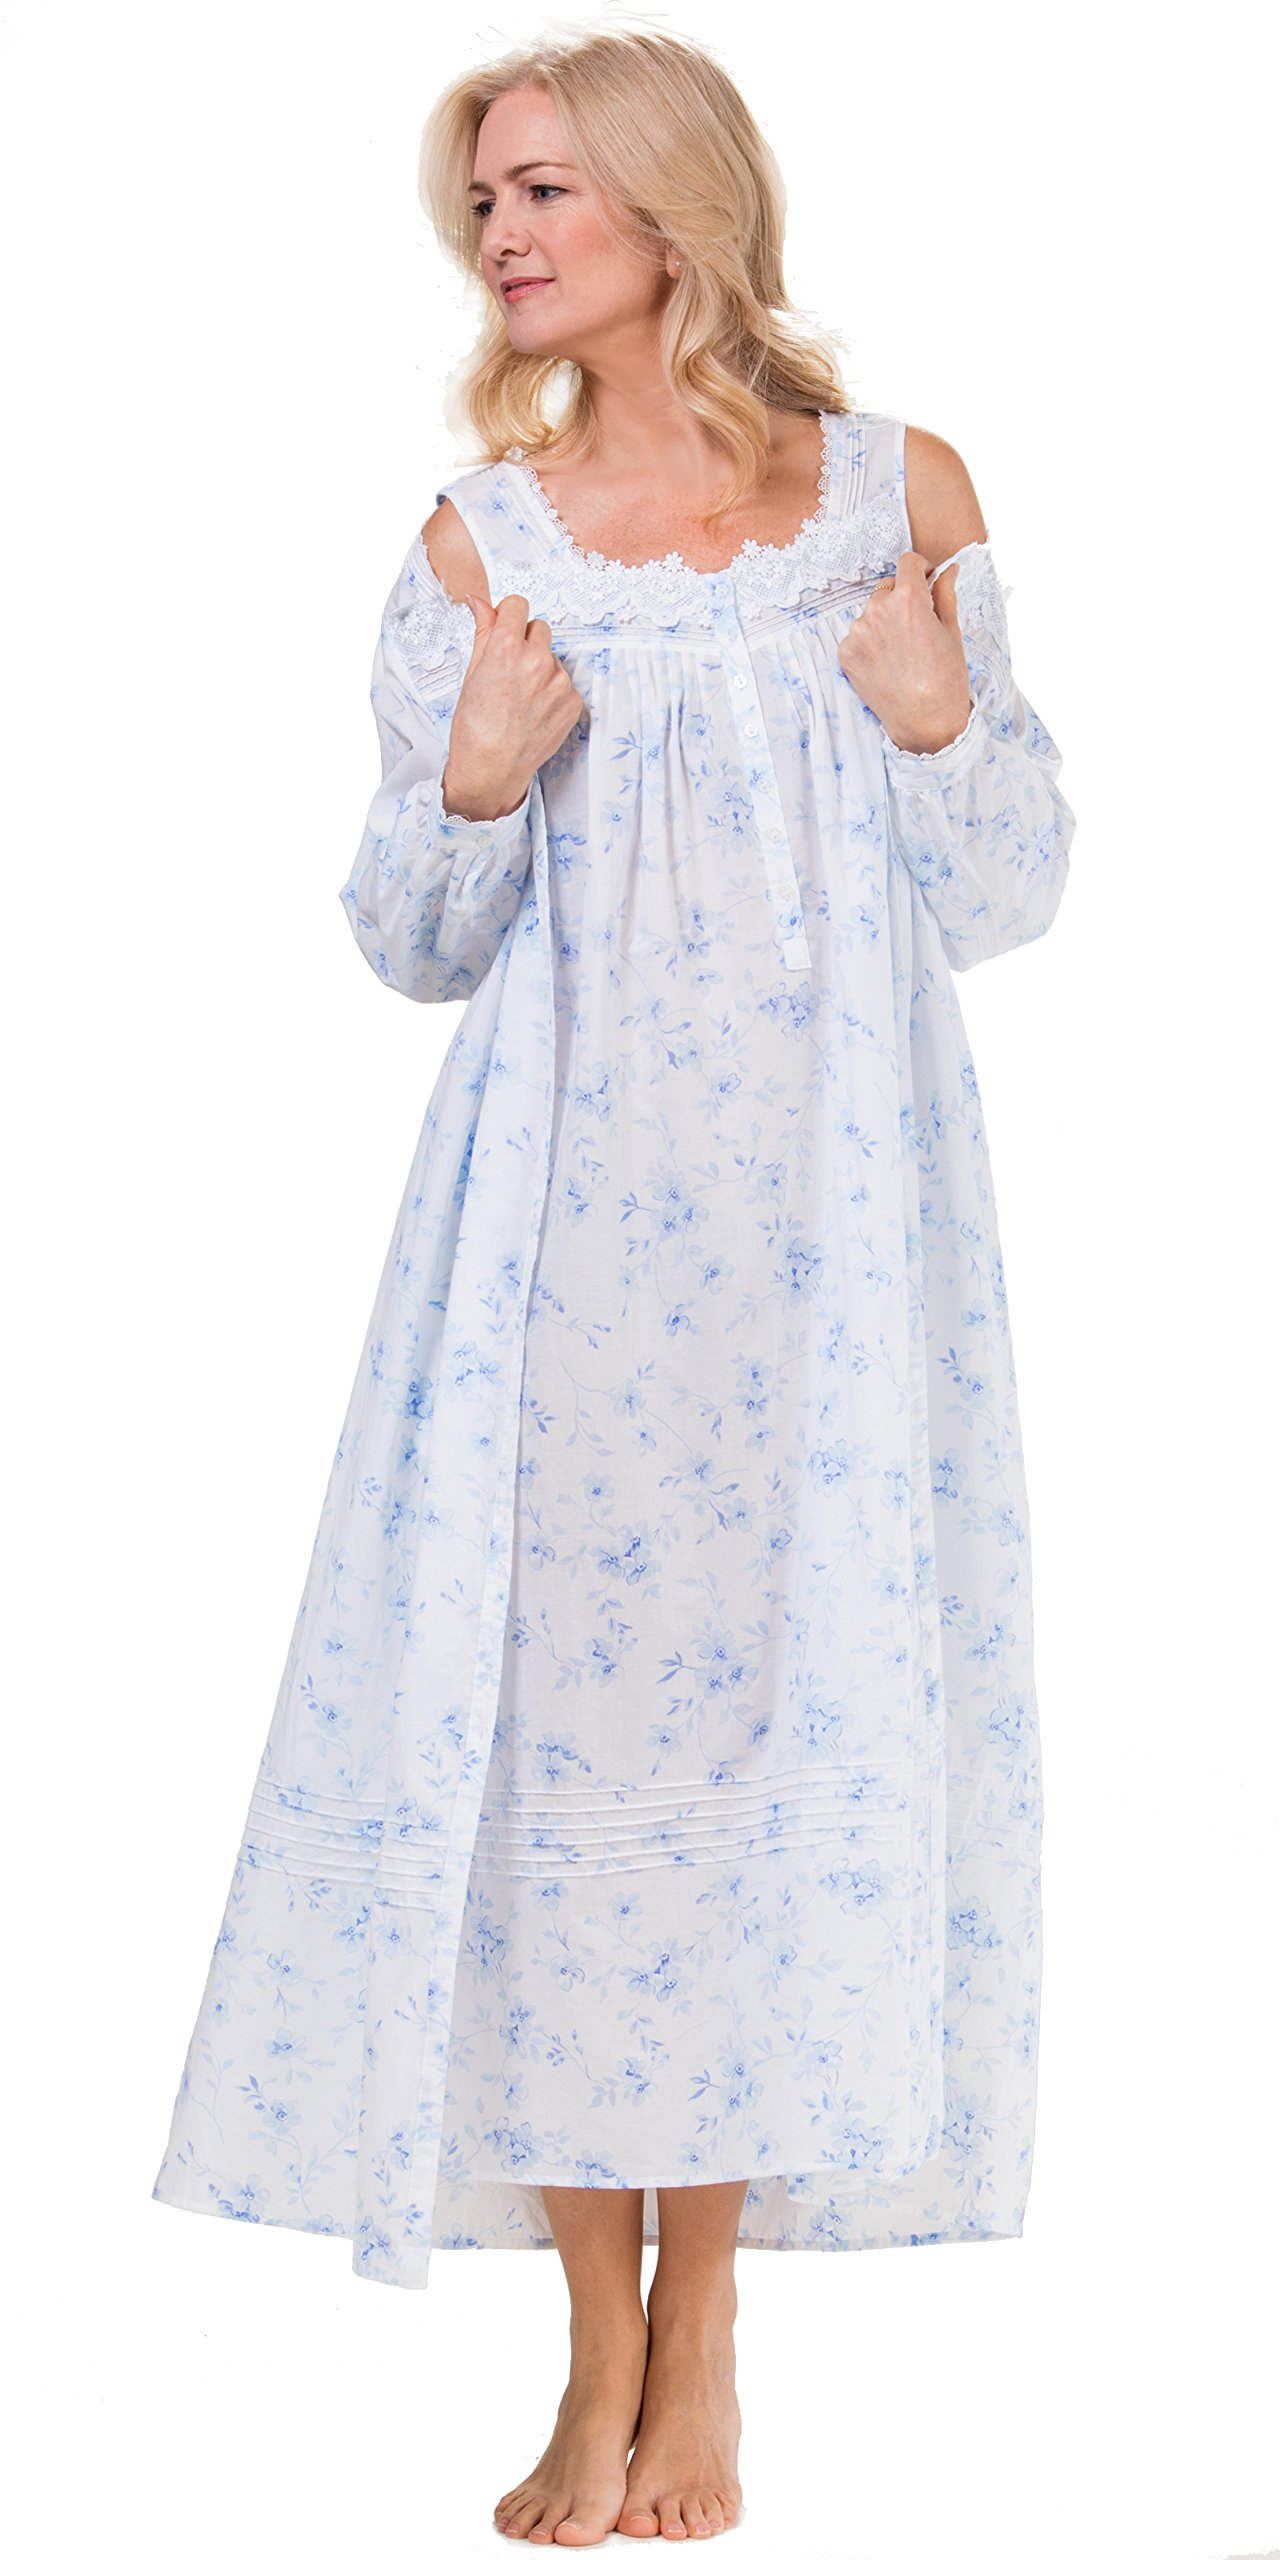 Eileen West Cotton Lawn Robe Gown Set In Dreamy Blue (Medium/10-12, Dreamy Blue Floral)